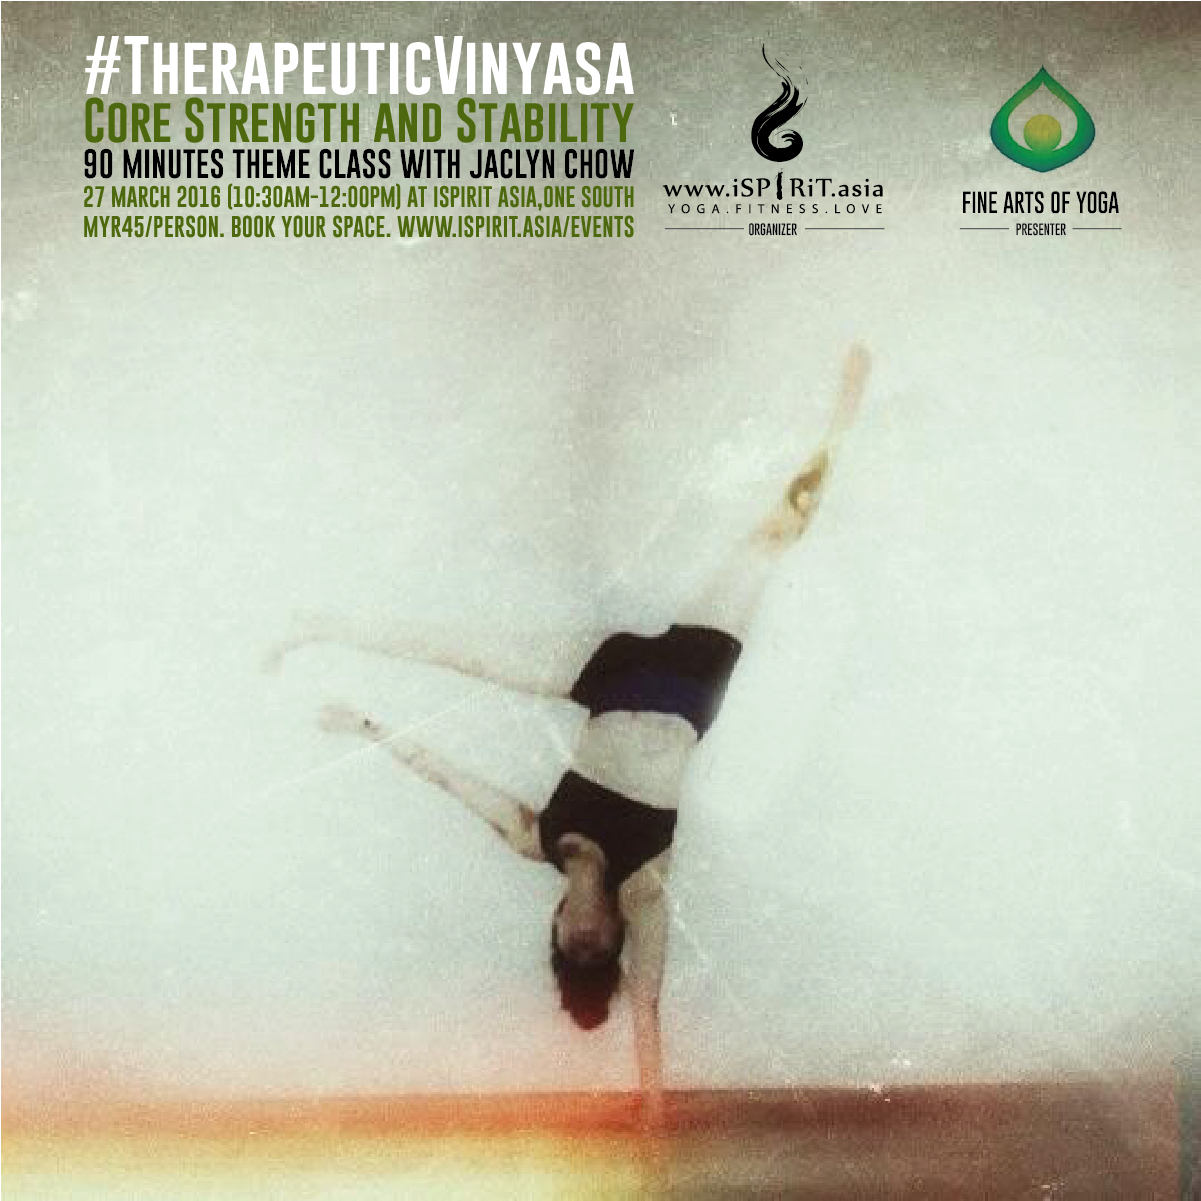 Therapeutic Vinyasa 'Core Strength and Stability' Poster v4